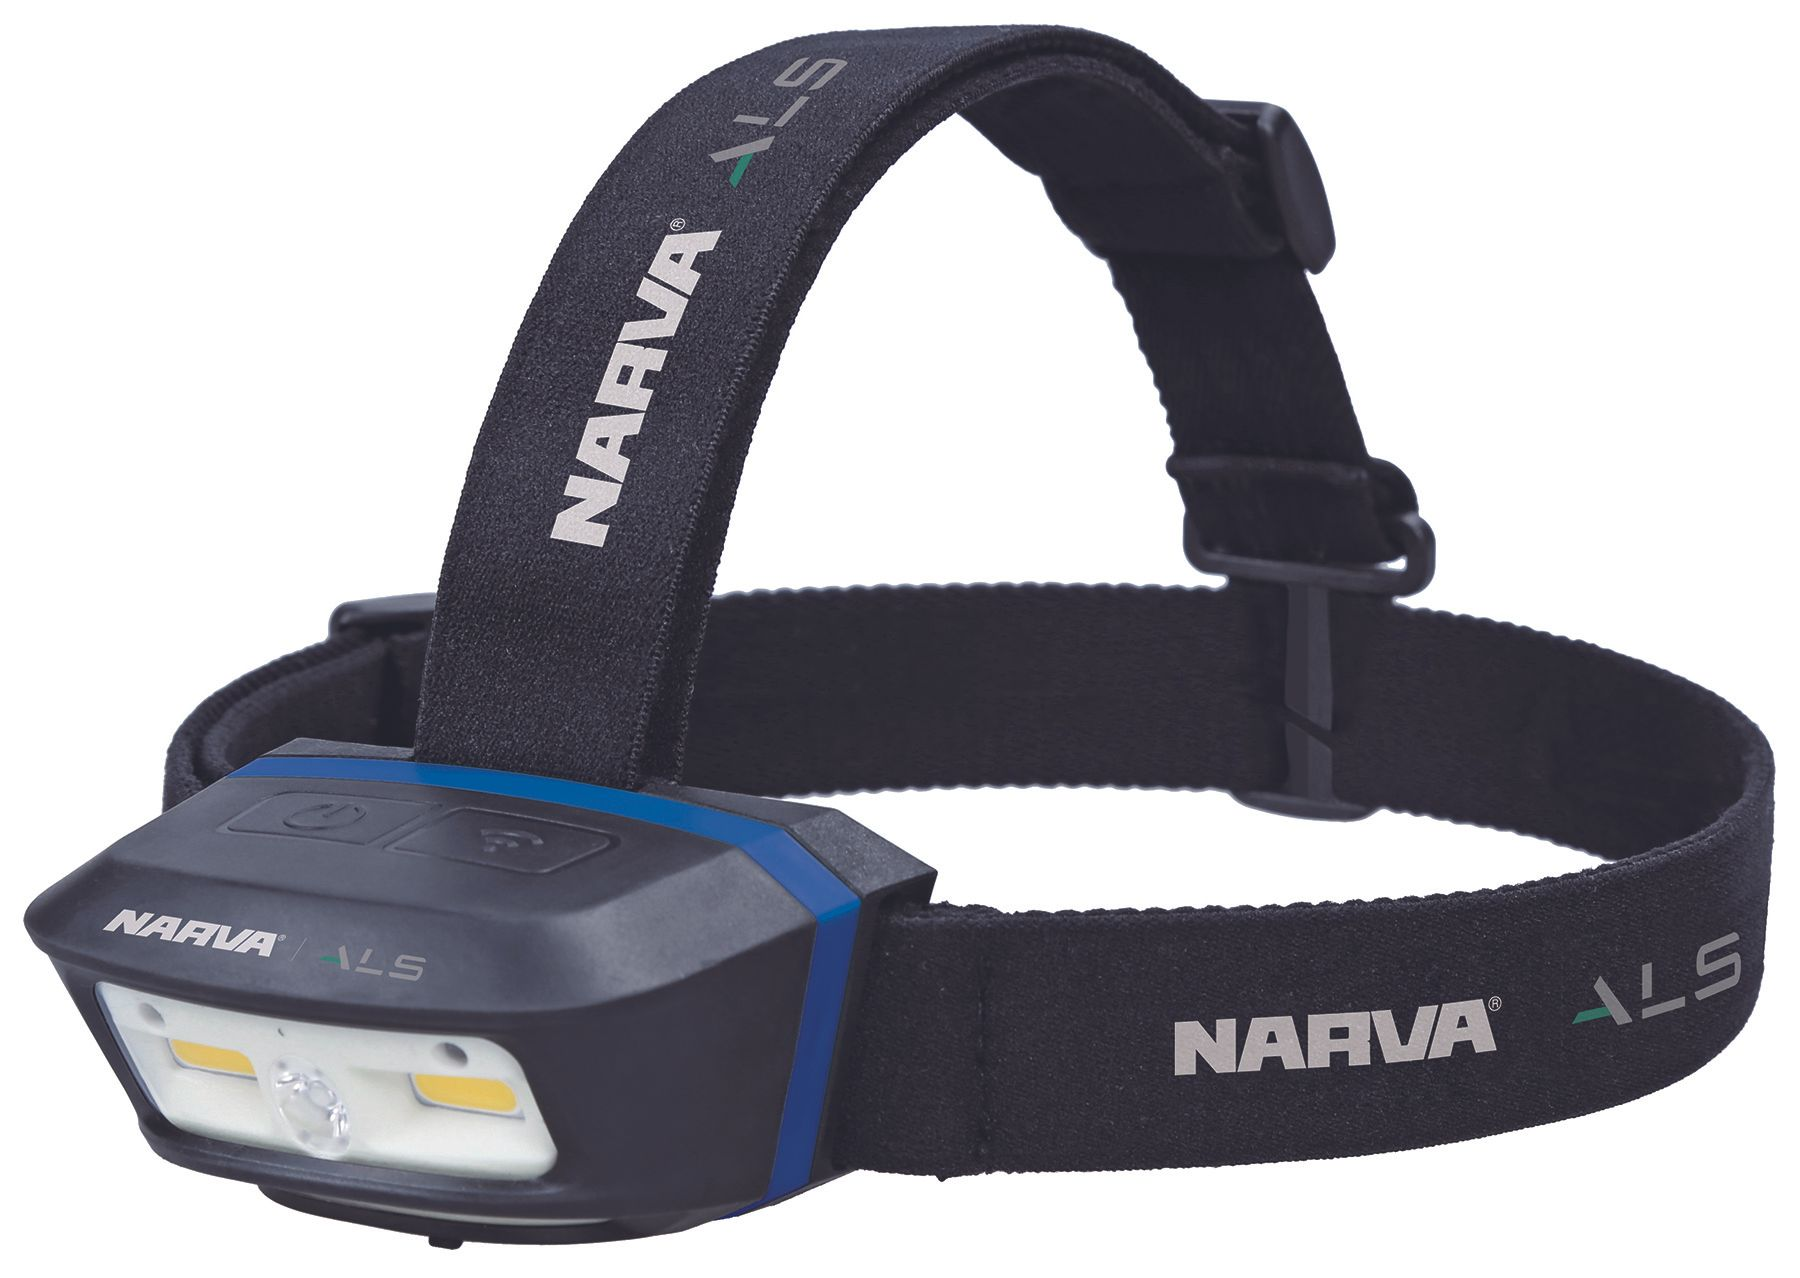 NARVA ALS  Rechargeable L.E.D Head Torch - 71426.jpg